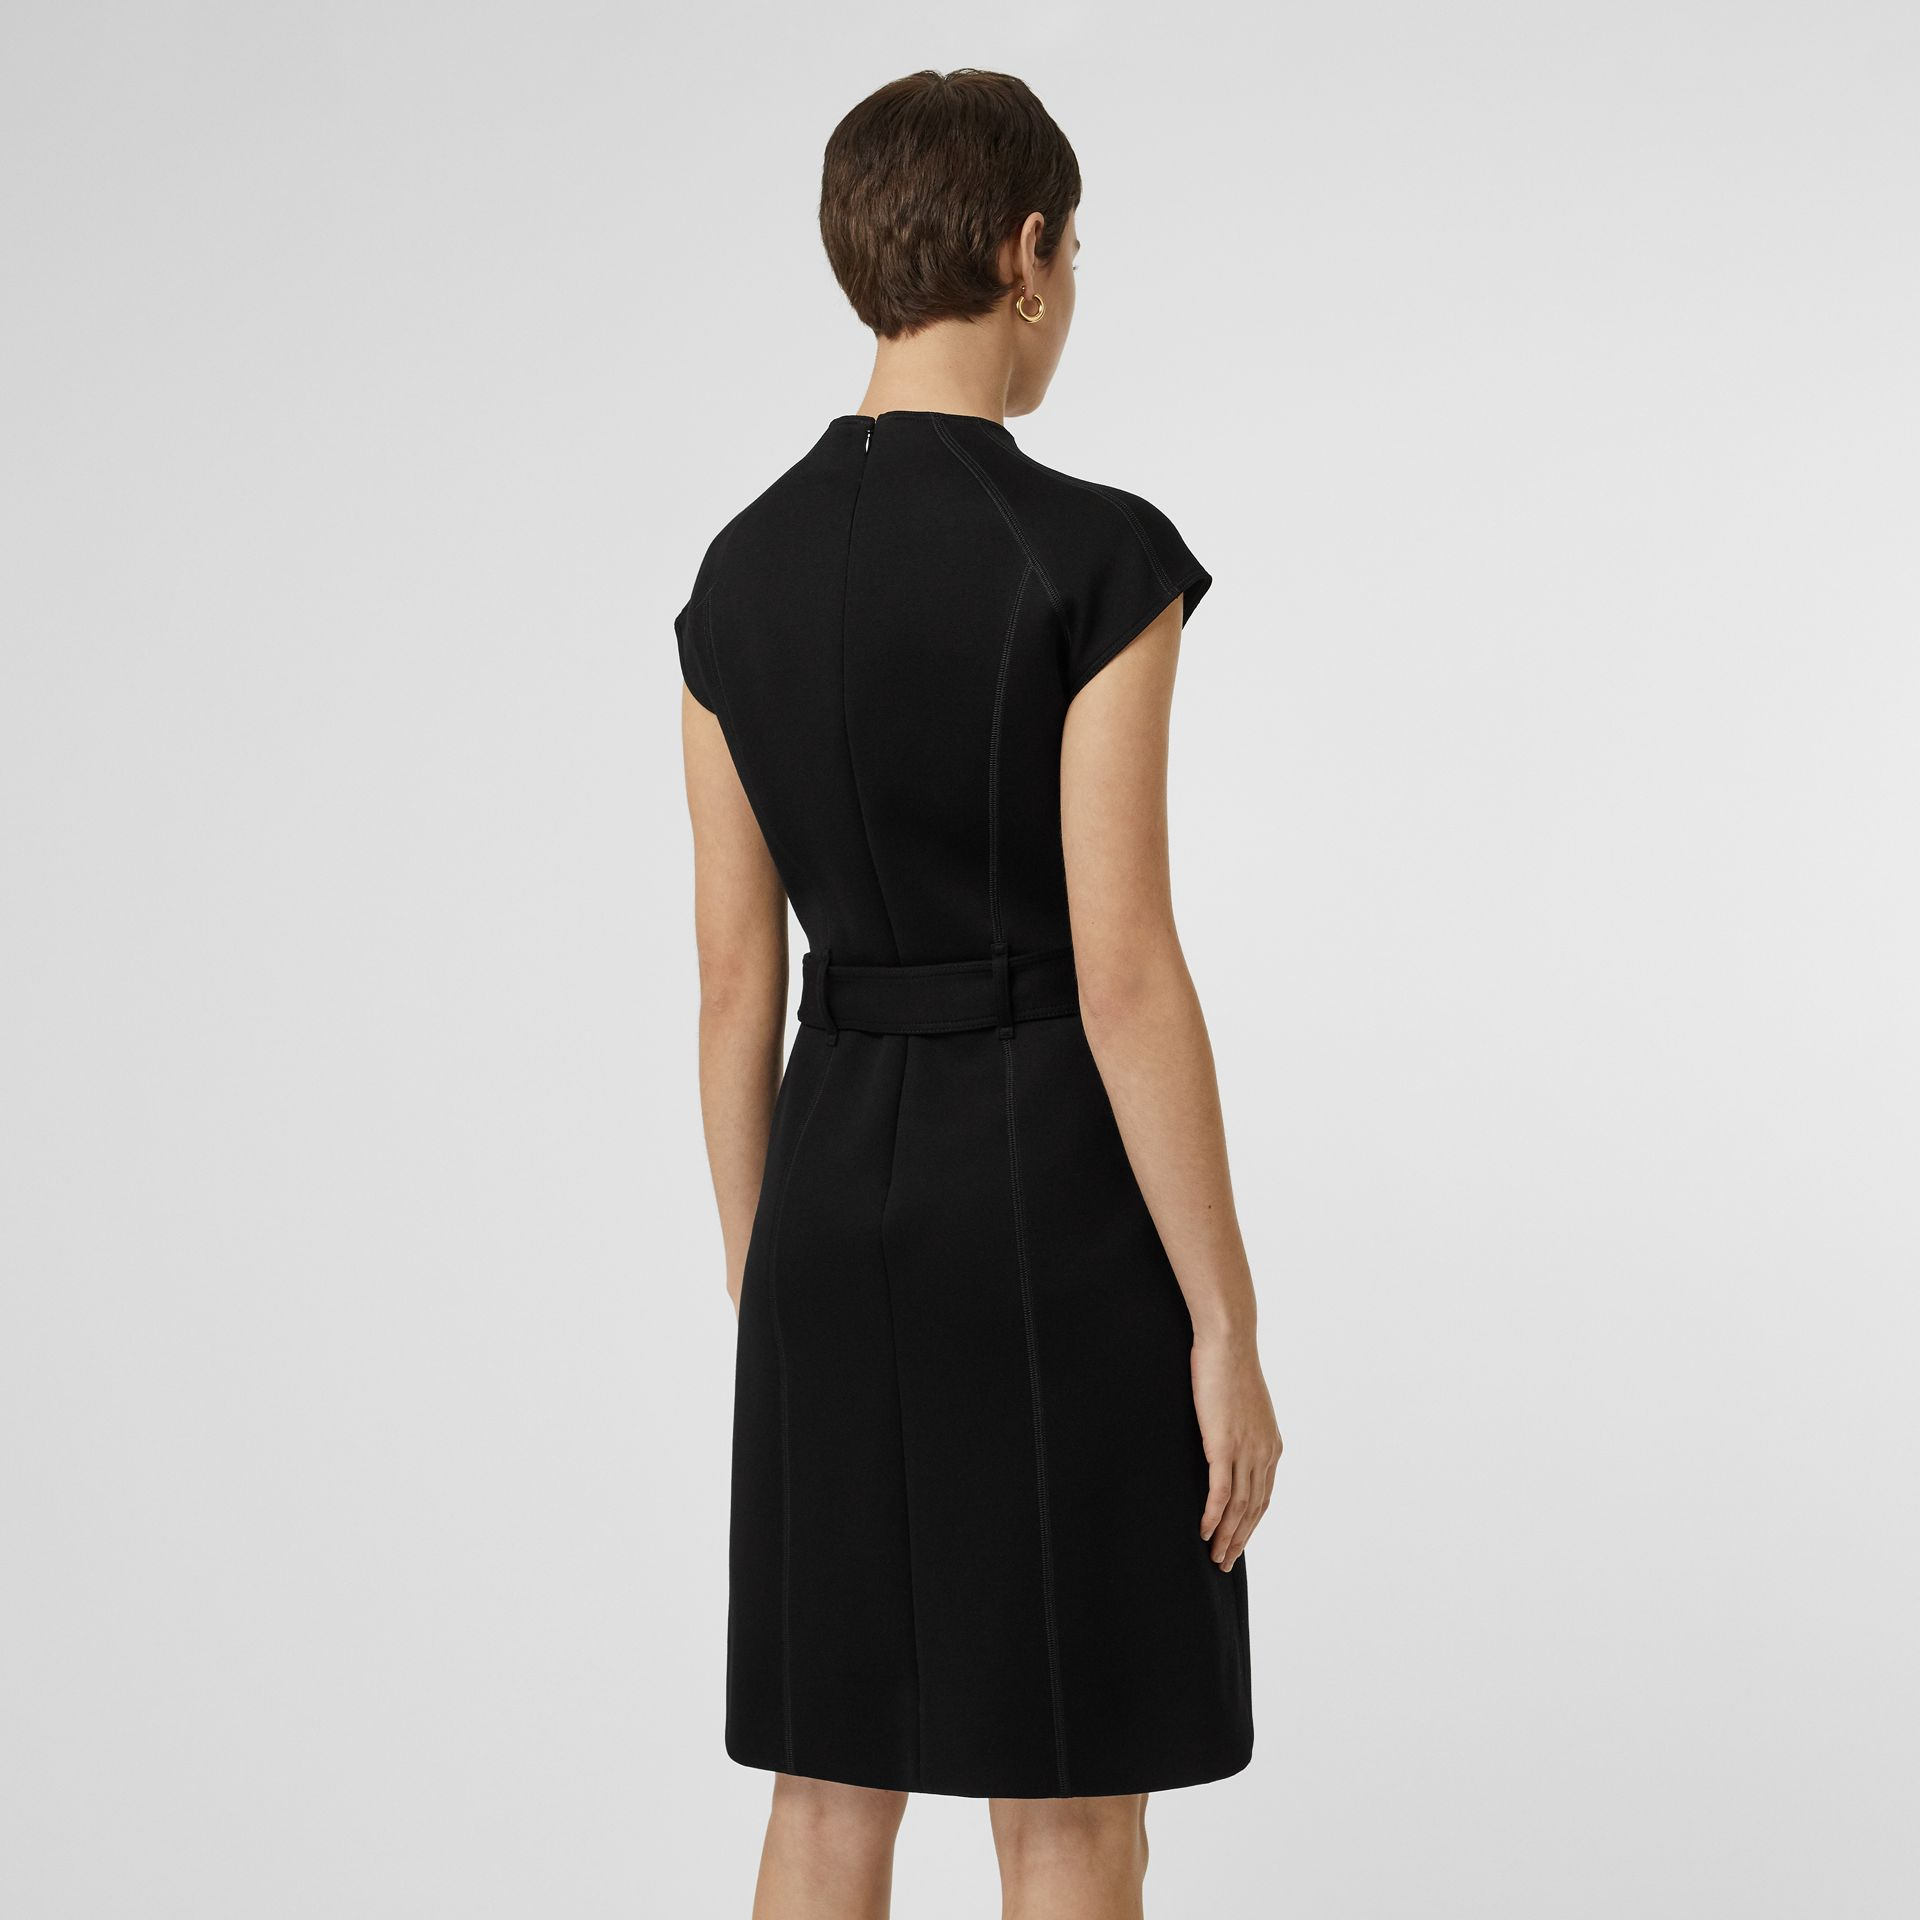 D-ring Detail Bonded Jersey Dress in Black - Women | Burberry Australia - gallery image 2